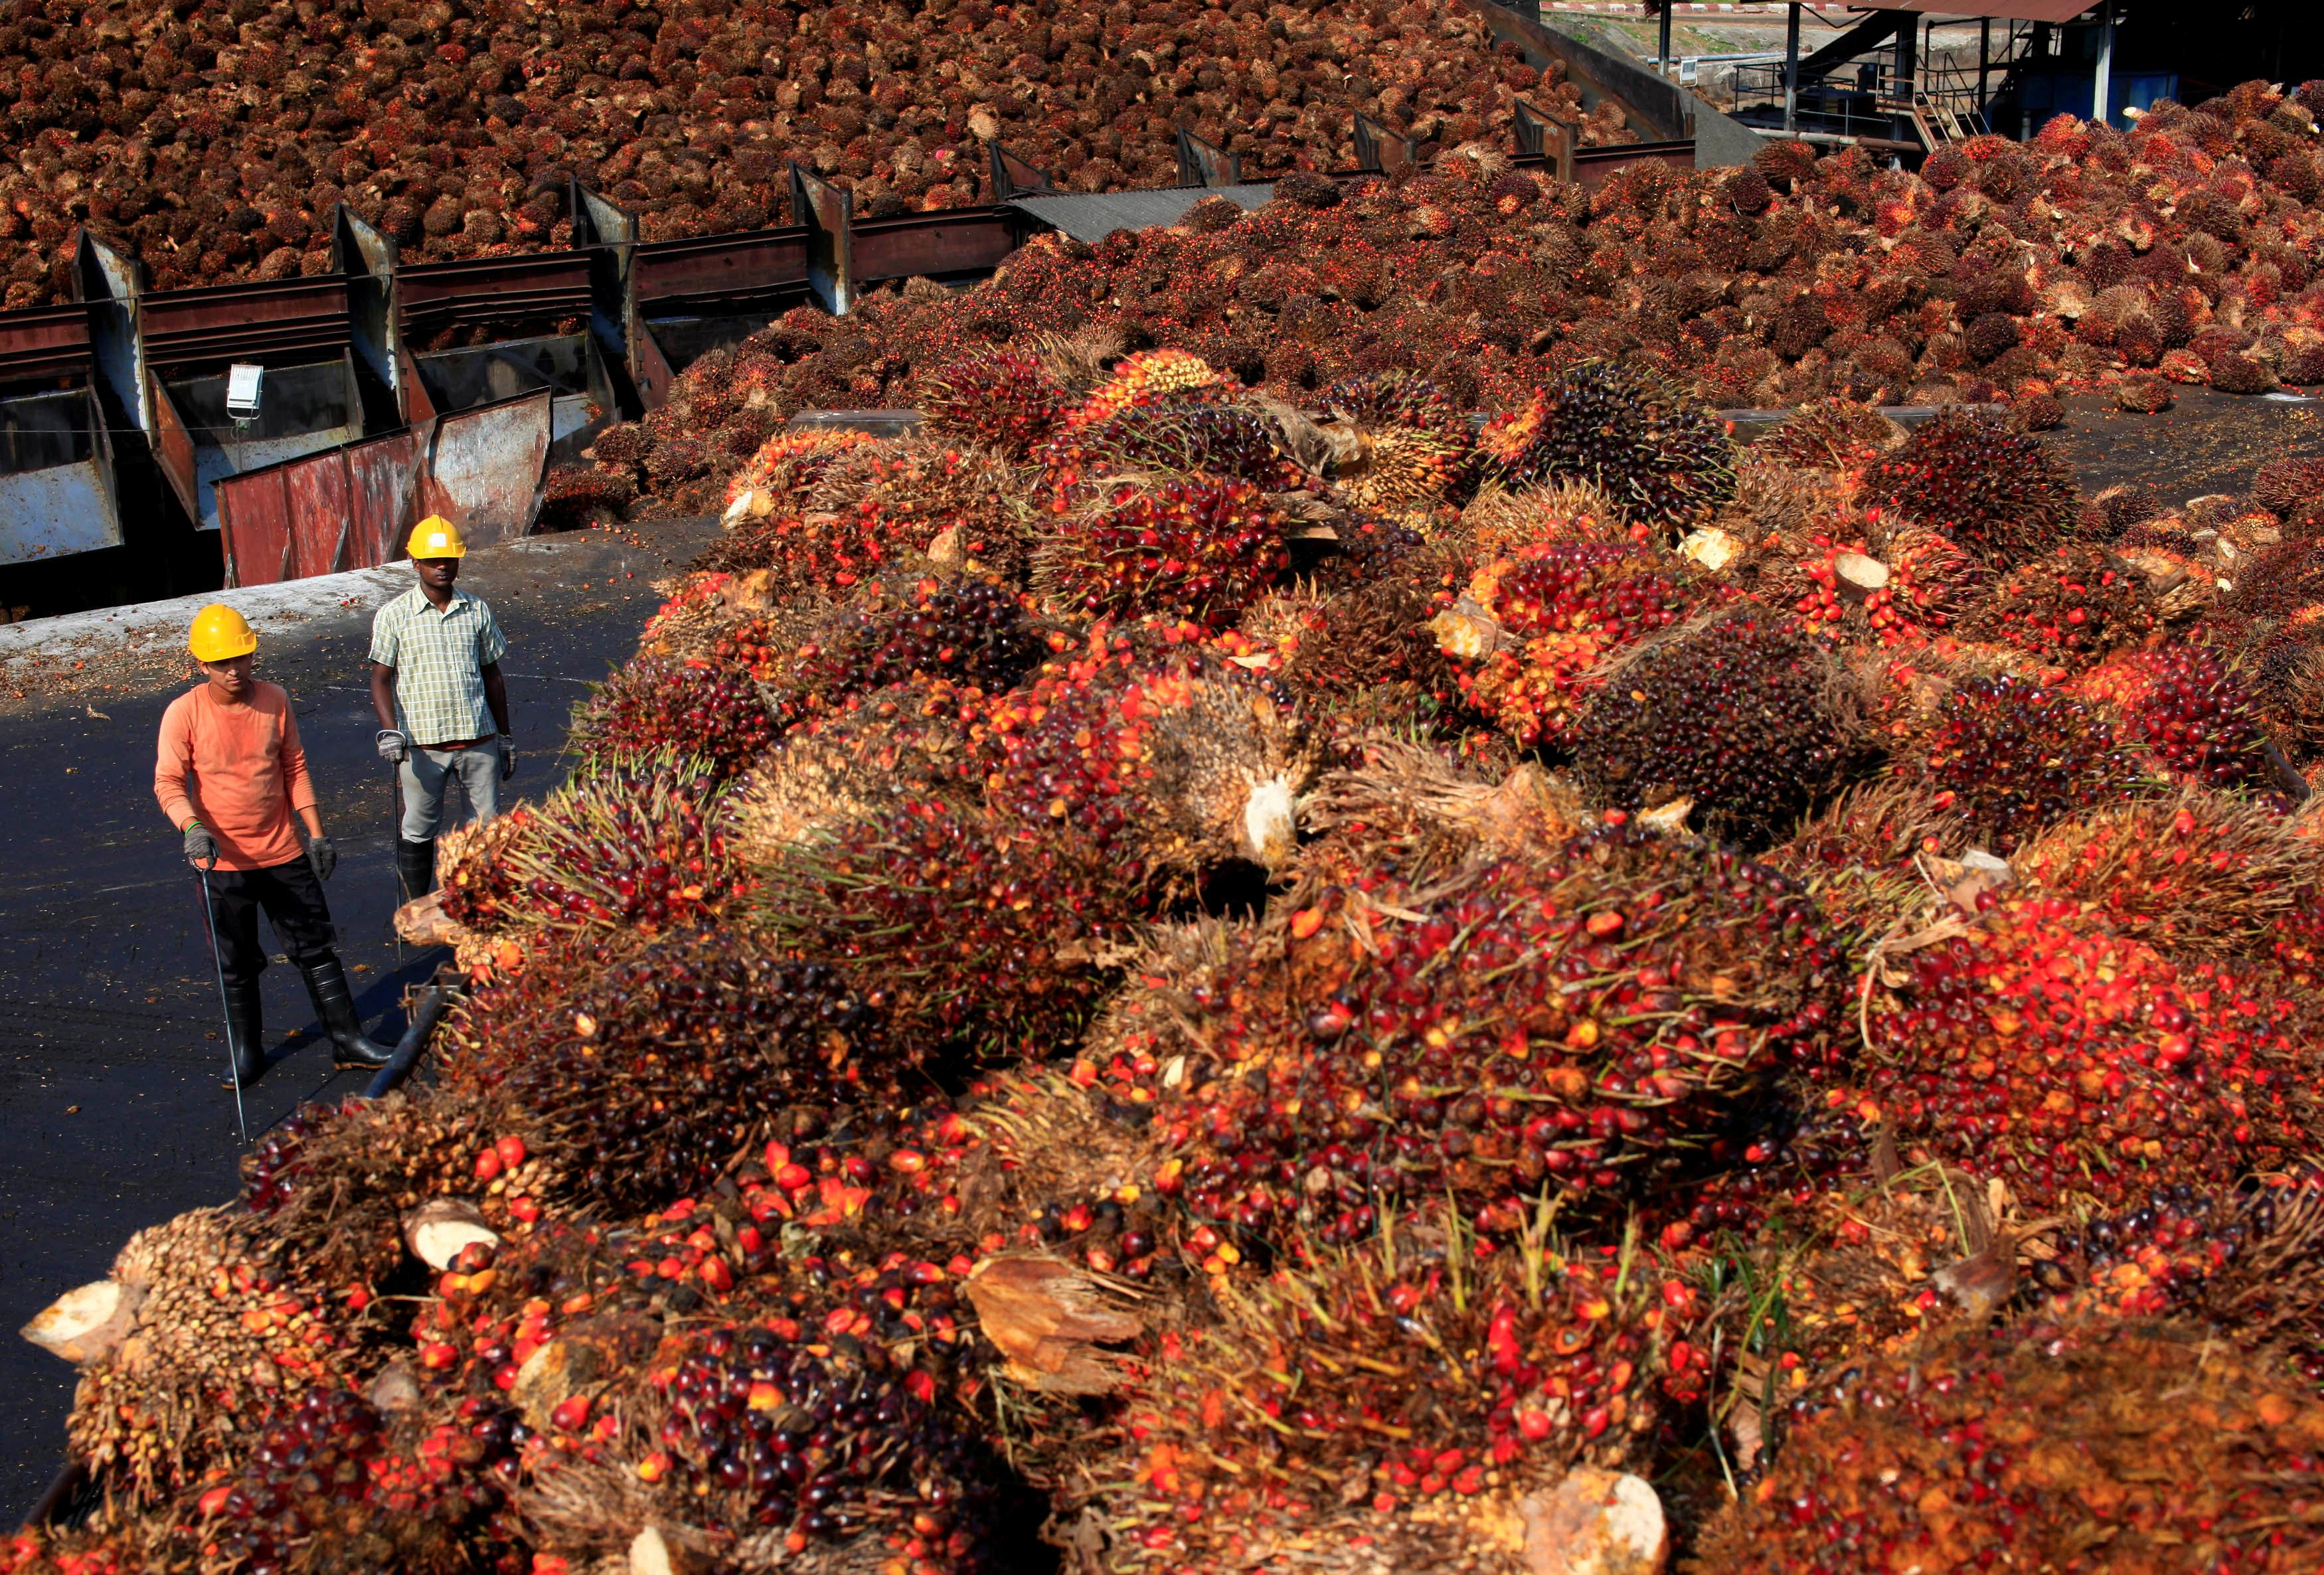 Malaysia could curb French purchases if palm oil use restricted